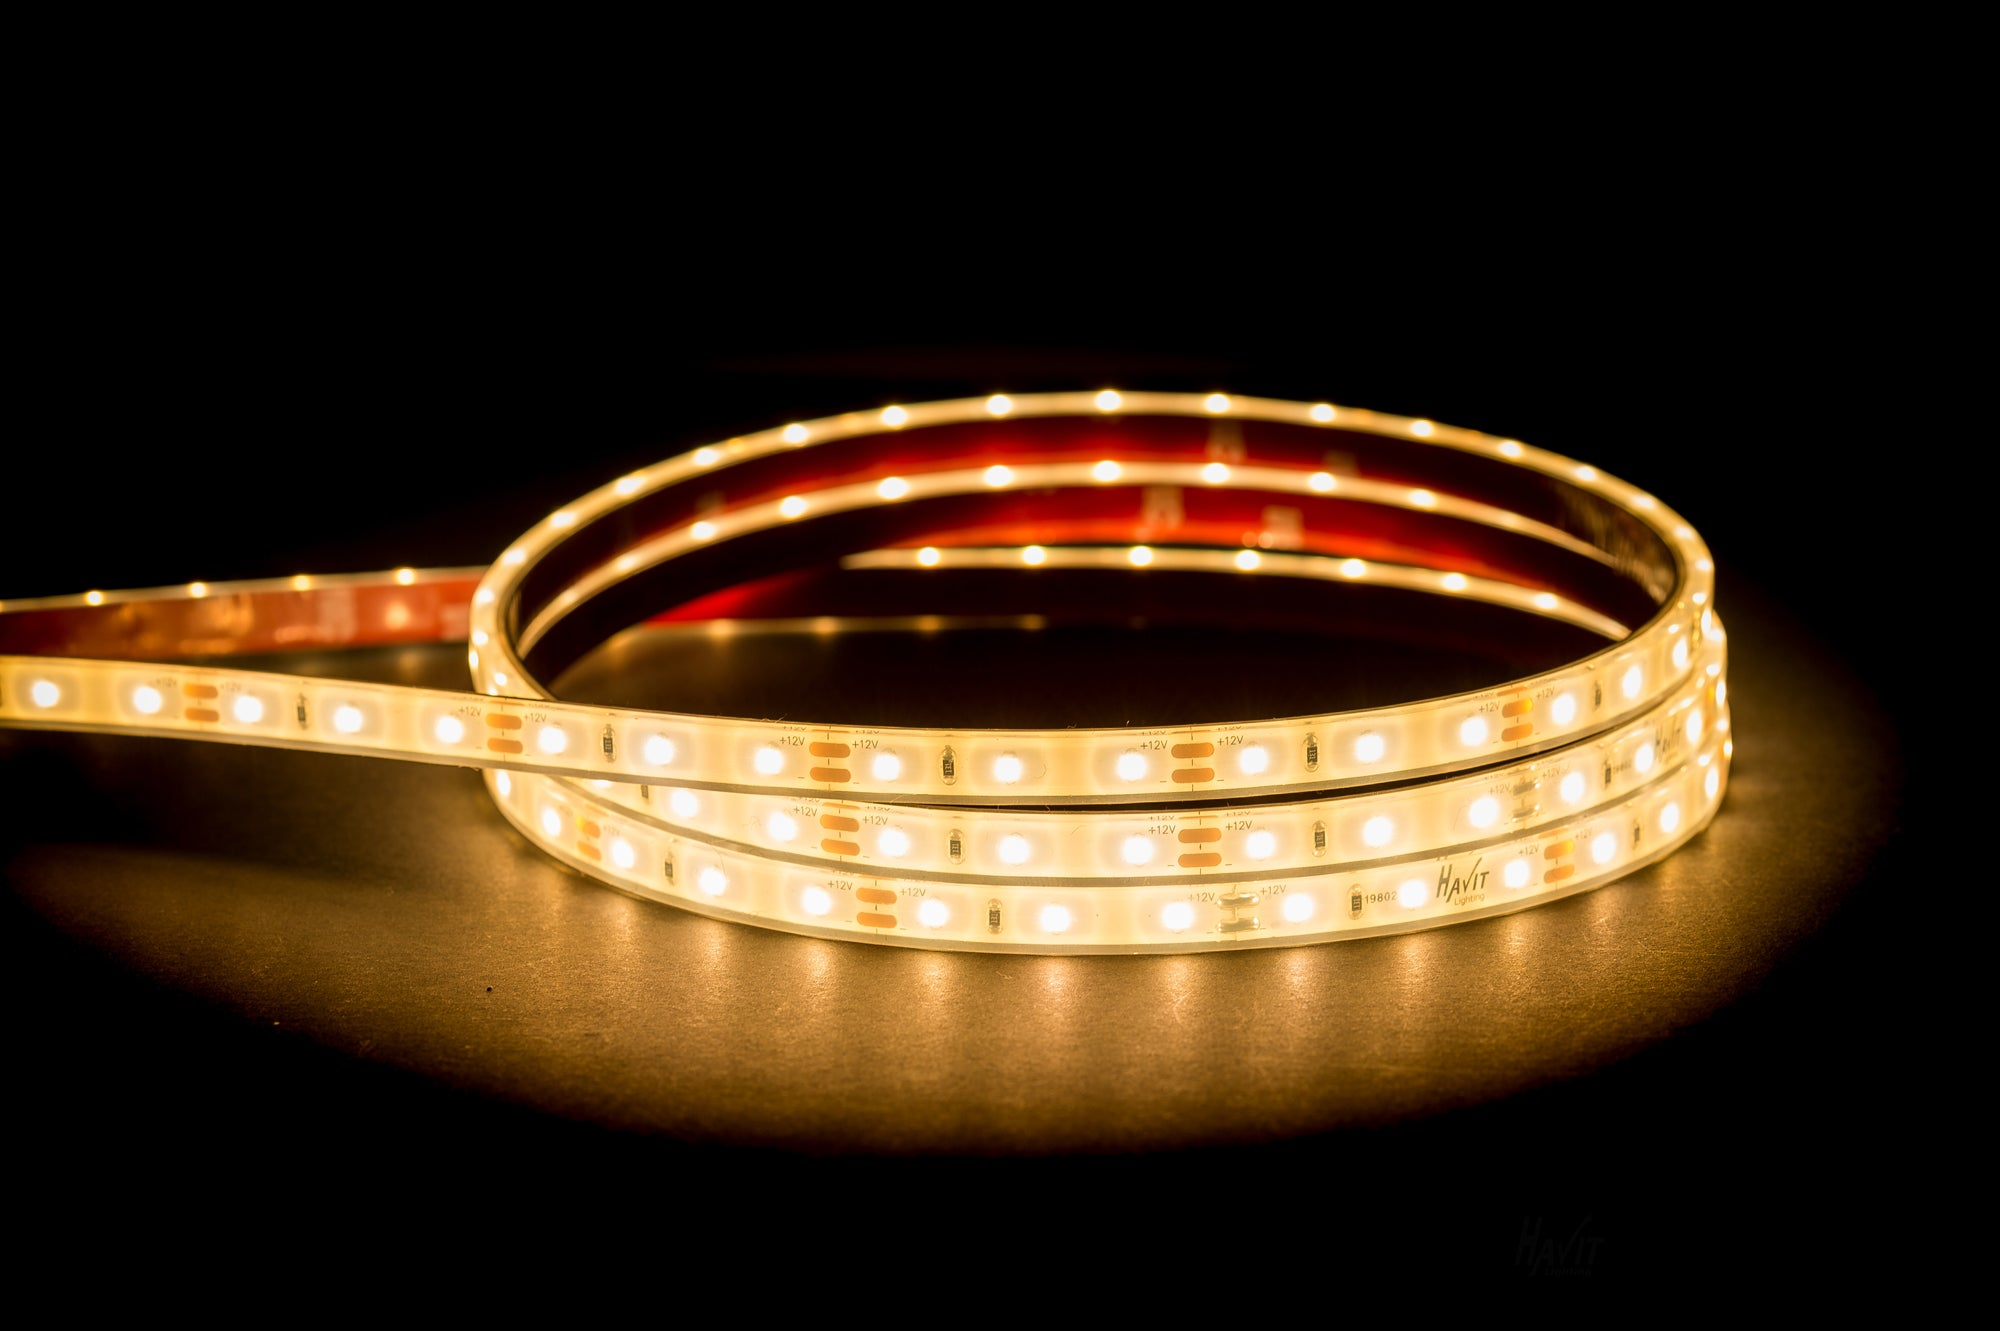 HV9723-IP67-60-3K - 4.8w IP67 LED Strip 3000k